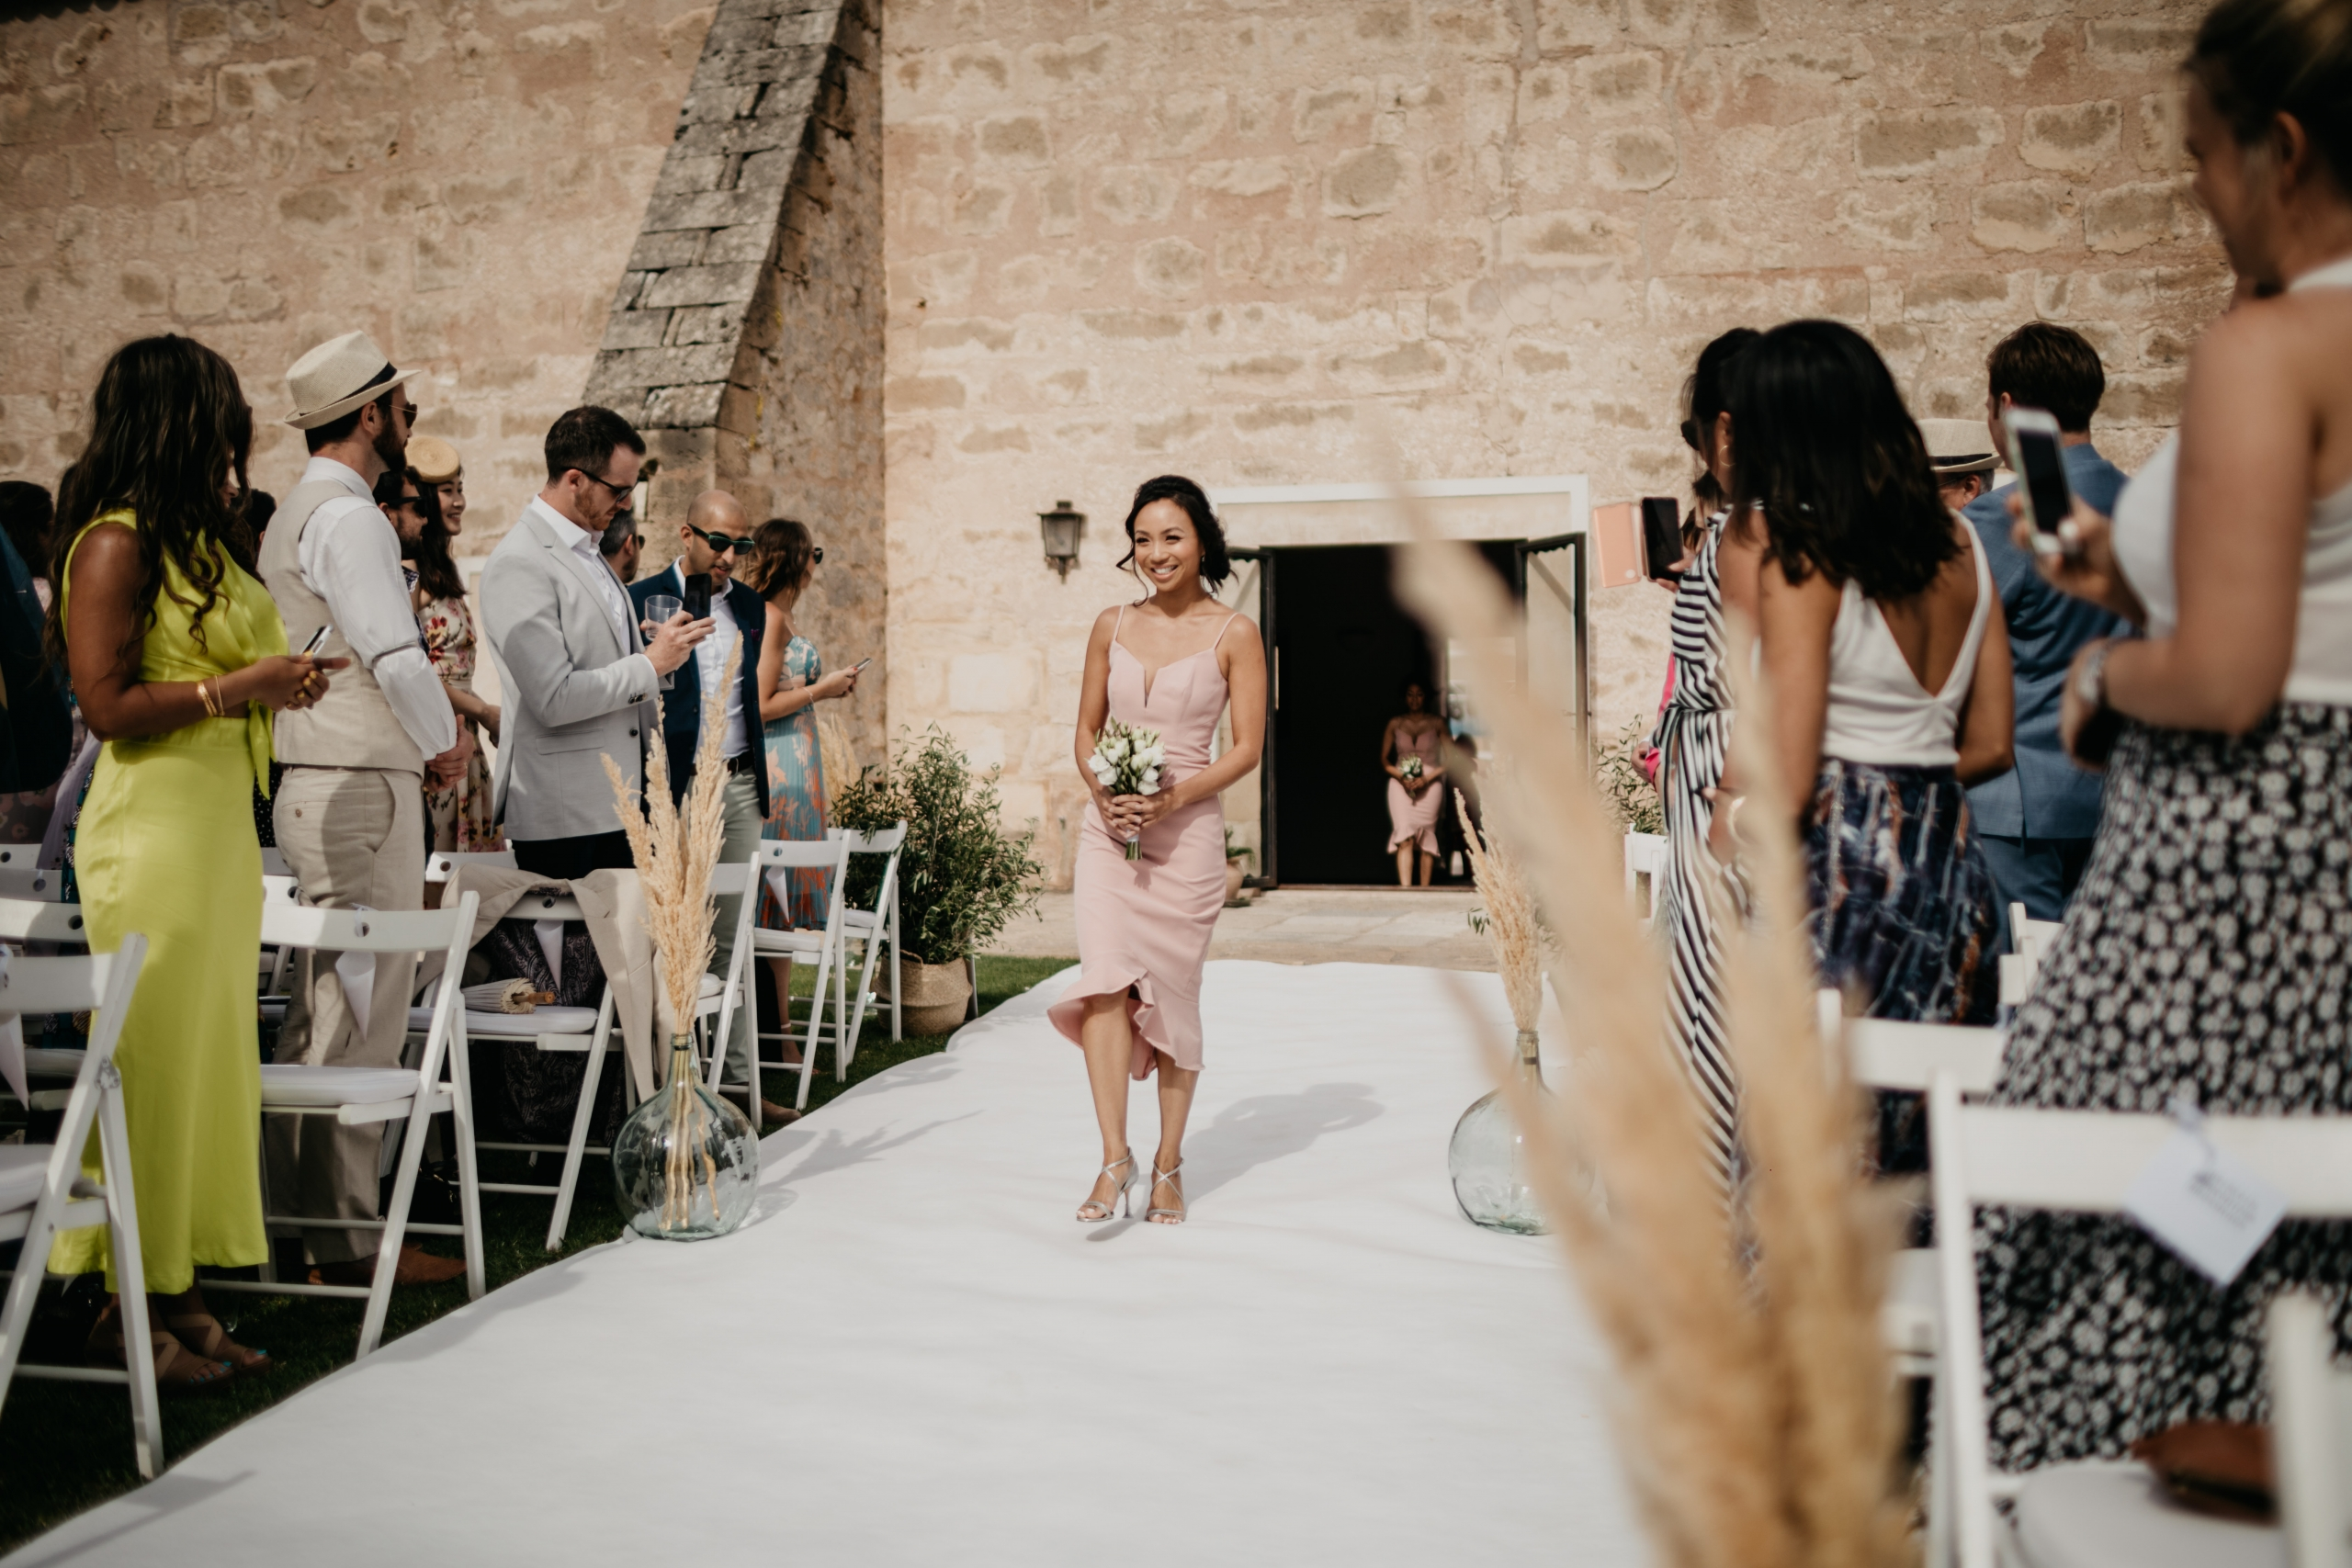 Wedding at Finca Biniorella